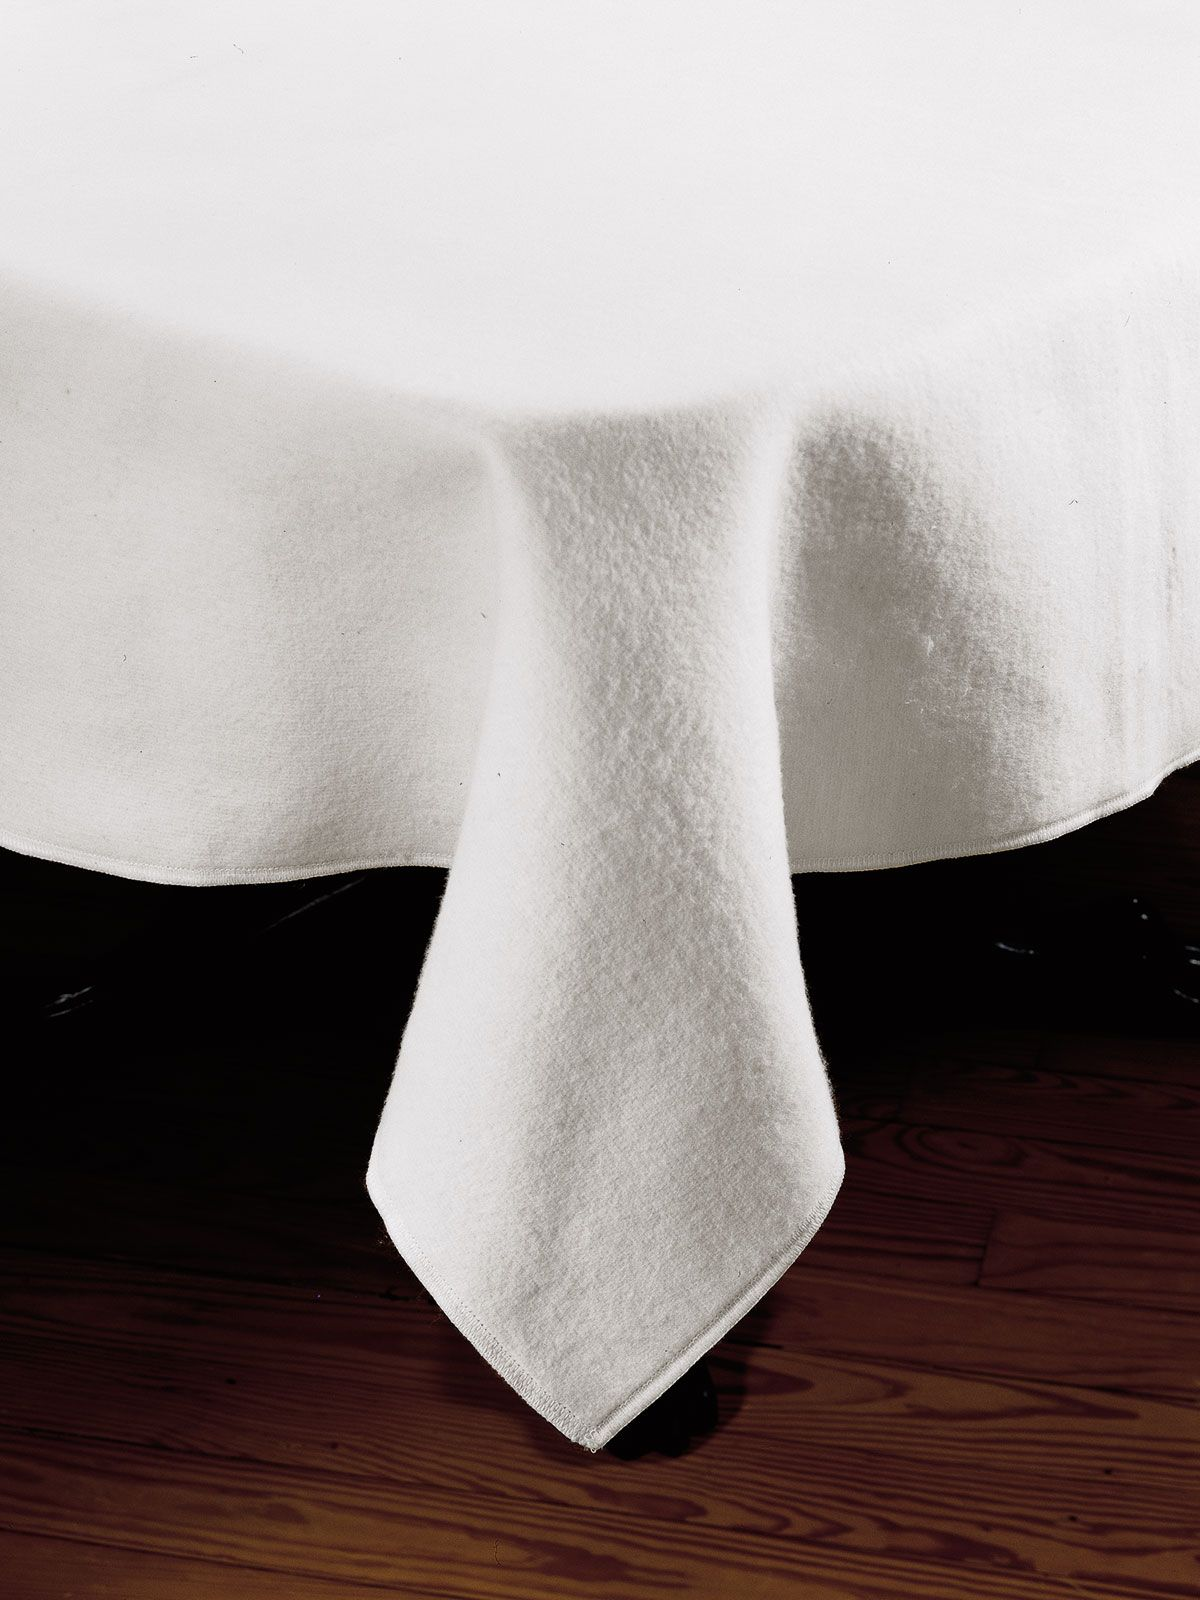 Felt Table Liners   Table Protectors   Easy Care, Poly Cotton Felt Liners  Offer Ideal Protection For Your Fine Dining Room Table